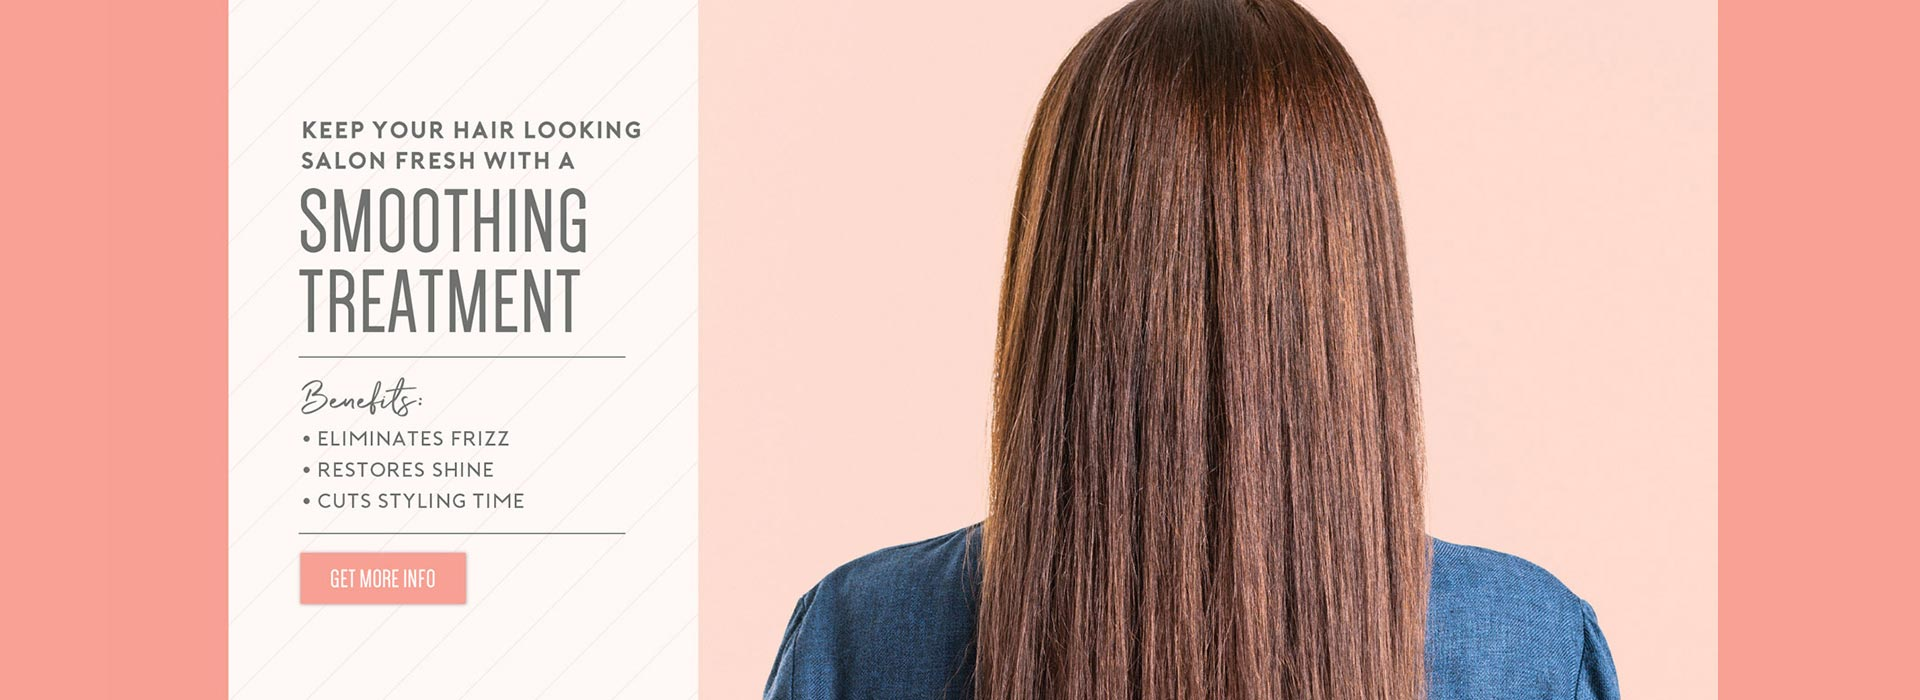 Keep your hair looking salon fresh with a smoothing treatment